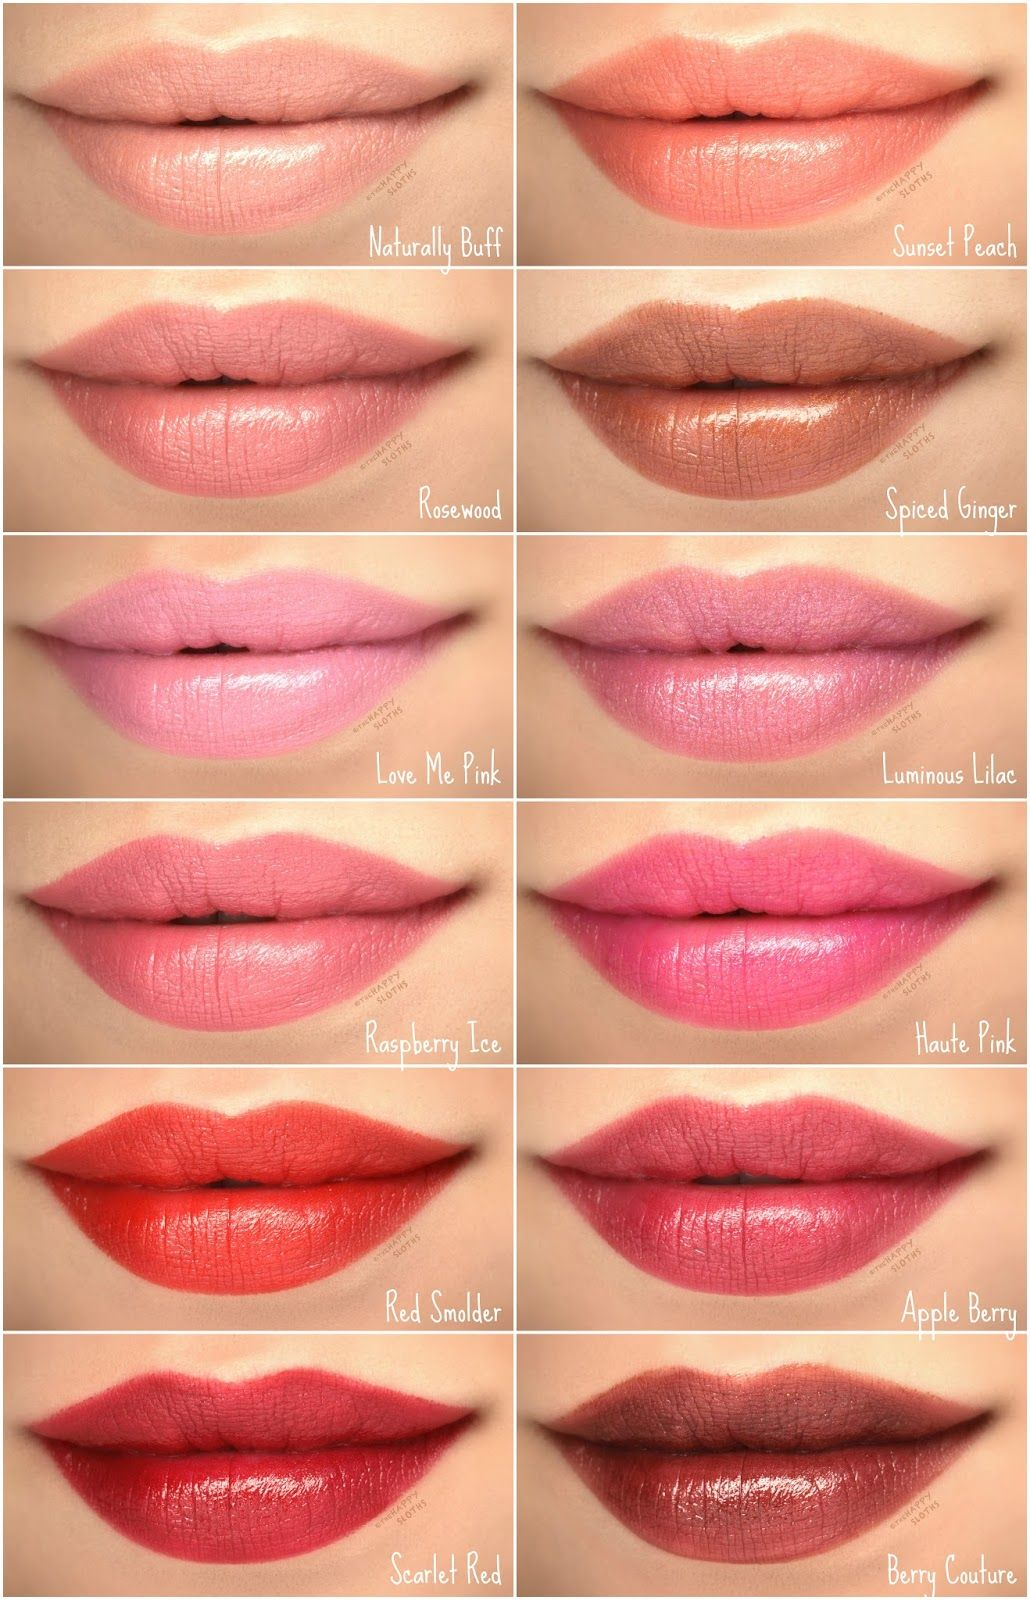 new mary kay gel semi shine lipstick review and swatches mk mary kay mary kay lipstick. Black Bedroom Furniture Sets. Home Design Ideas